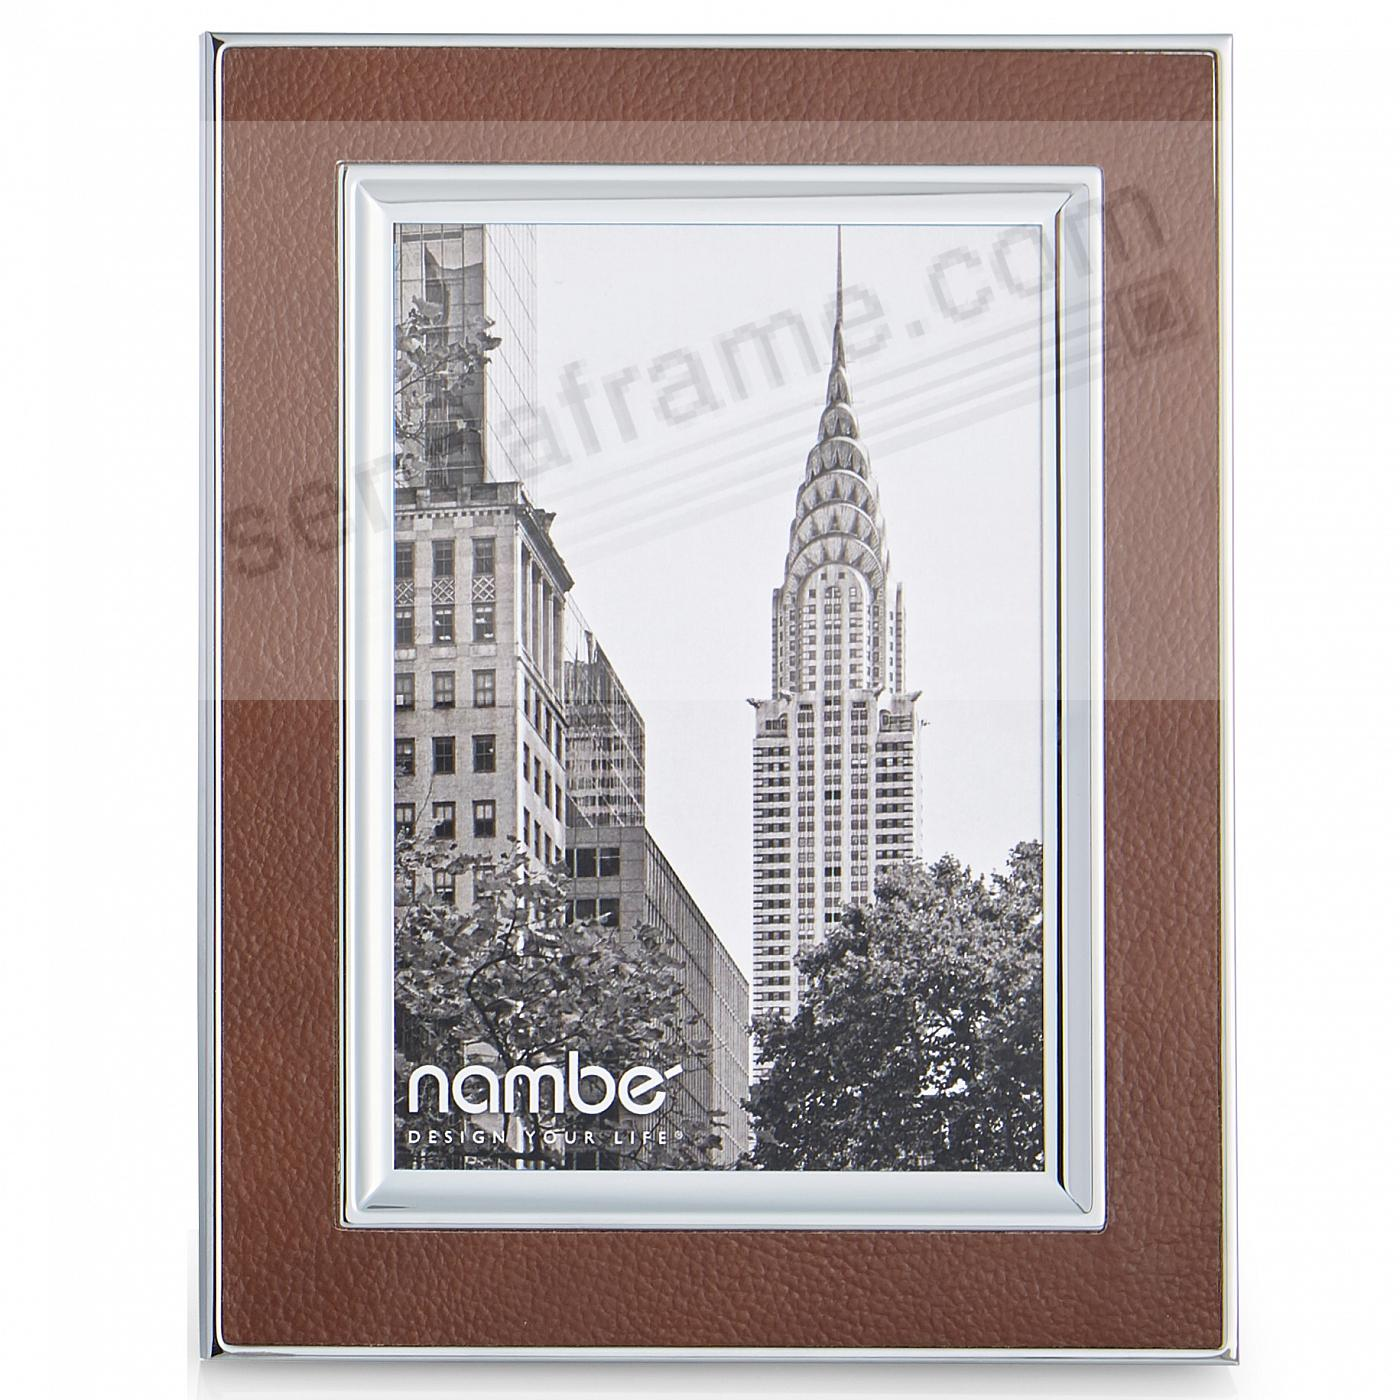 The NOVARA 5x7 frame by Nambe